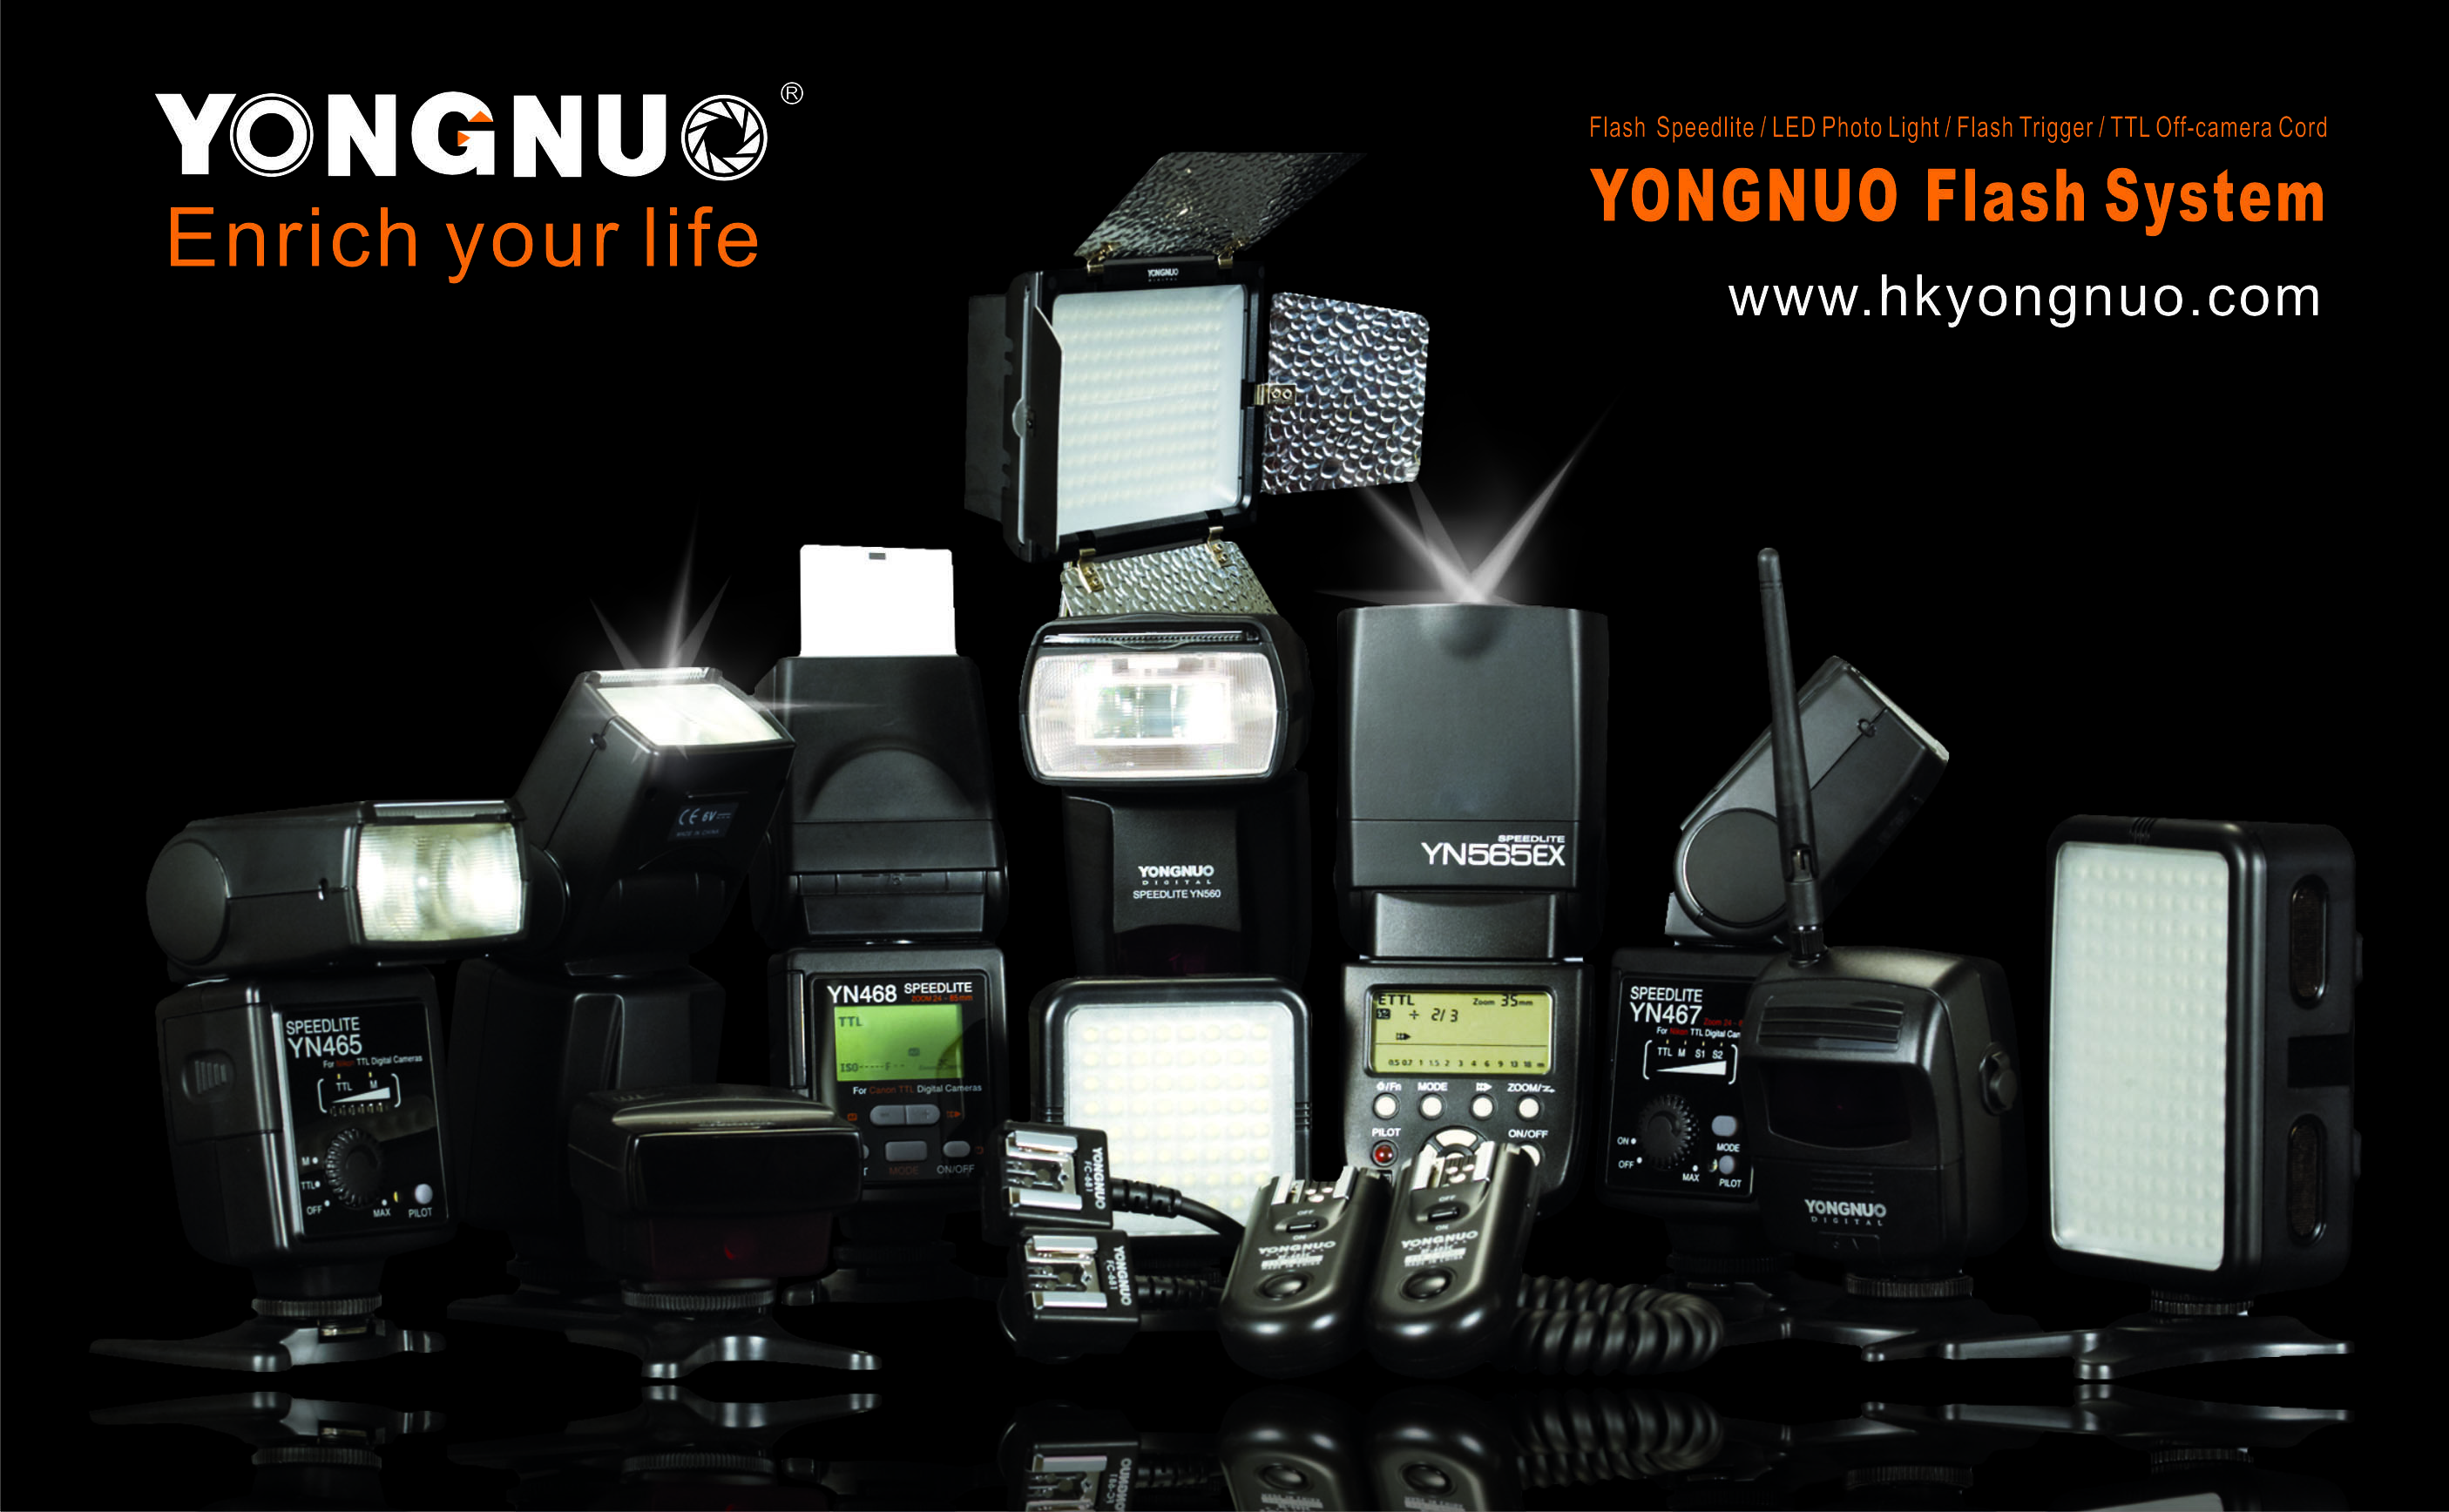 Yongnuo Photographic equipment Co.,Ltd